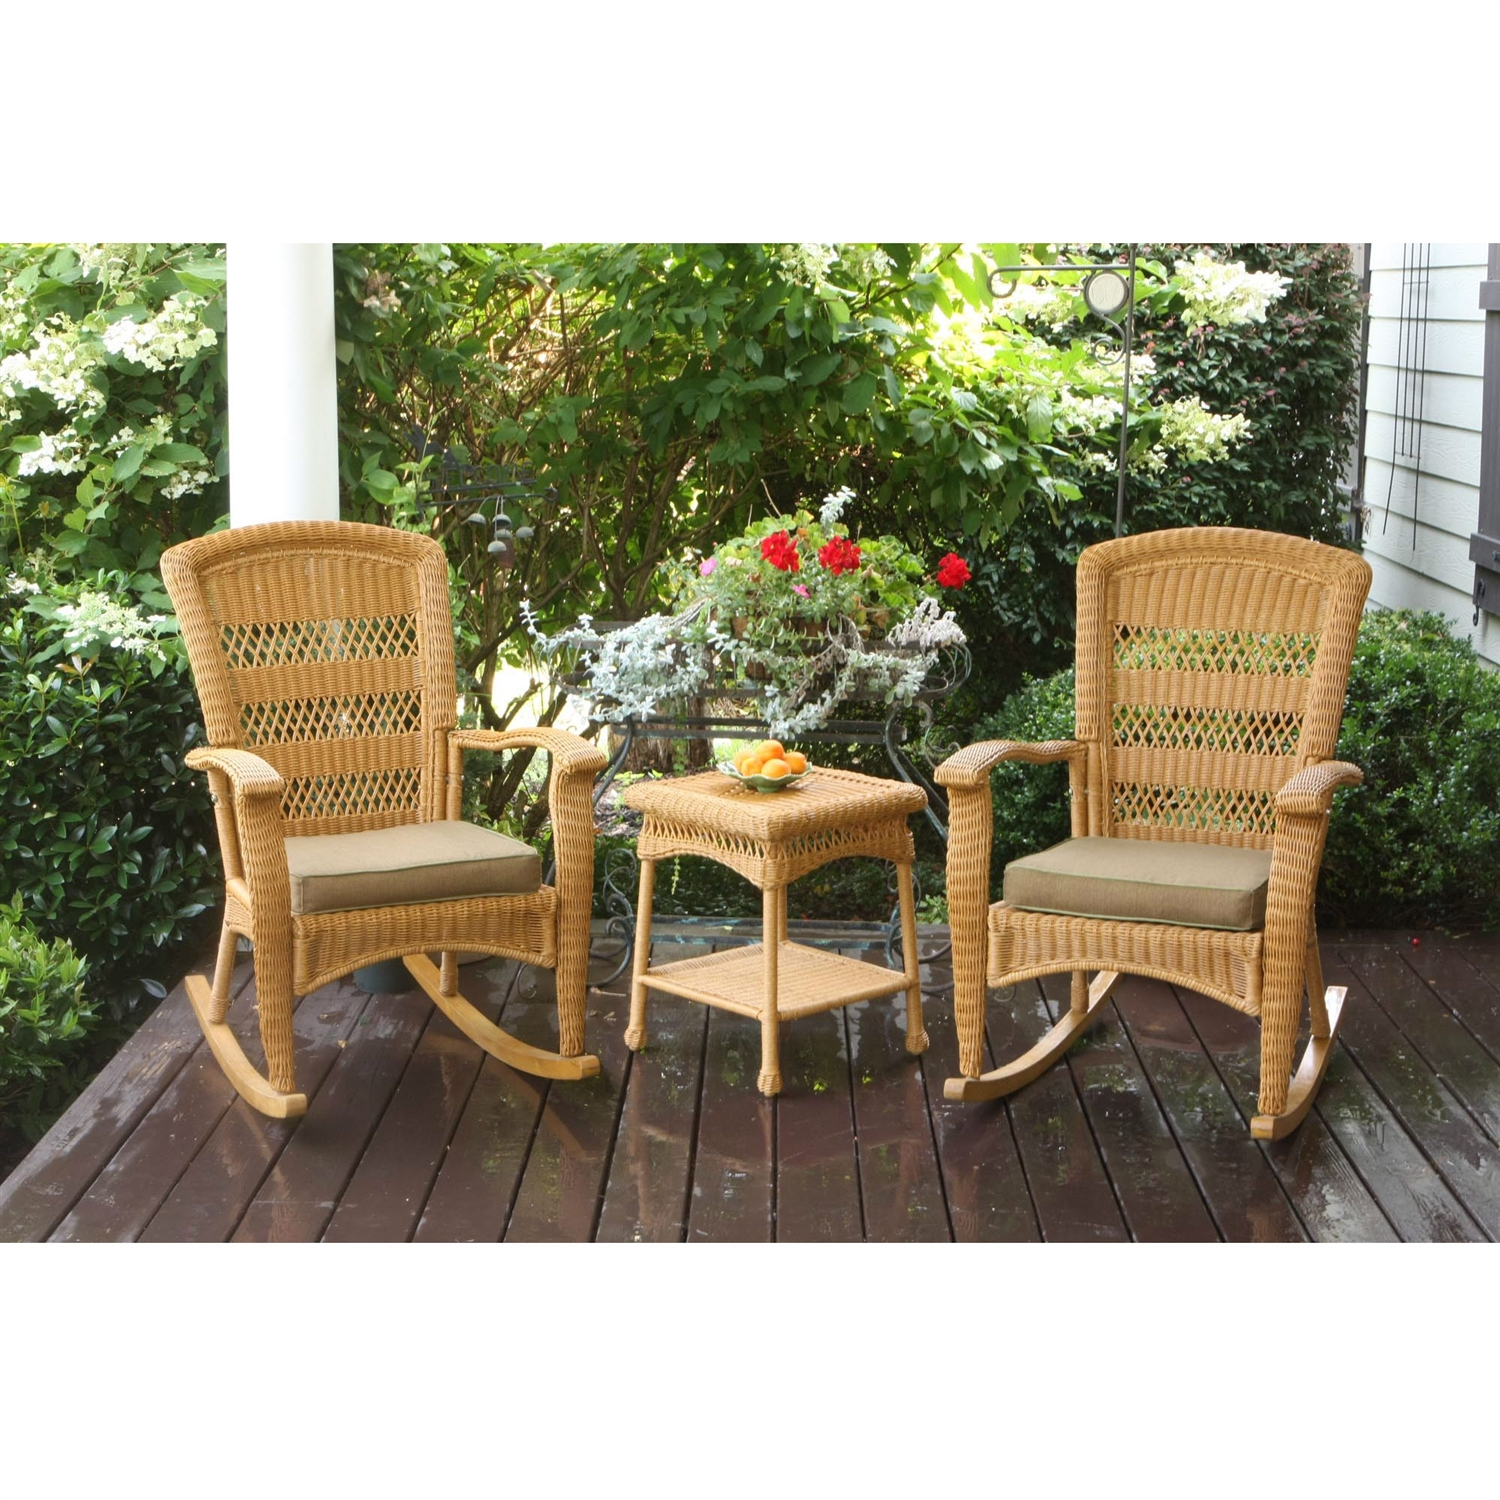 3pc Outdoor Porch Rocker Set With 2 Amber Wicker Resin